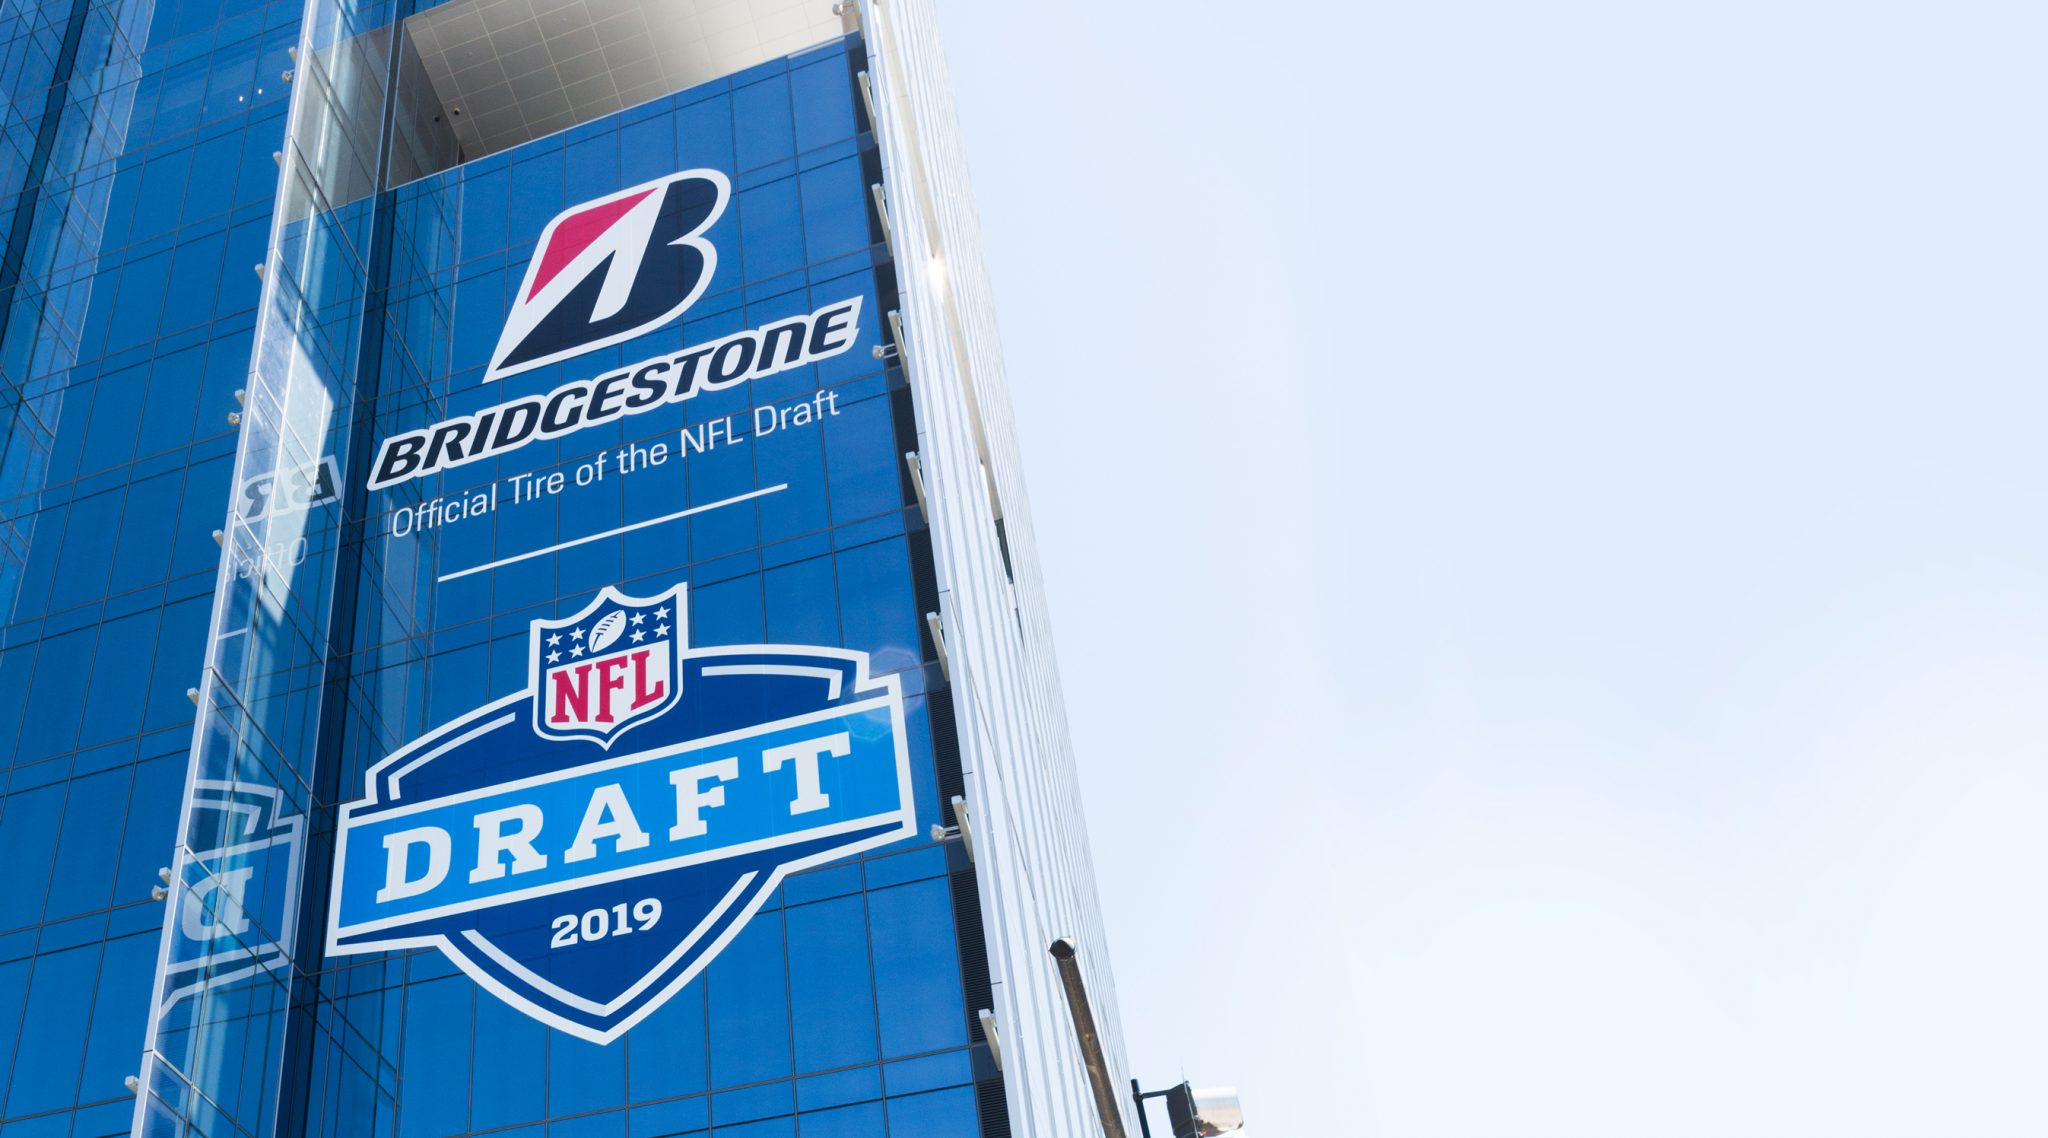 Letting Every NFL Fan Know This Is Bridgestone's House